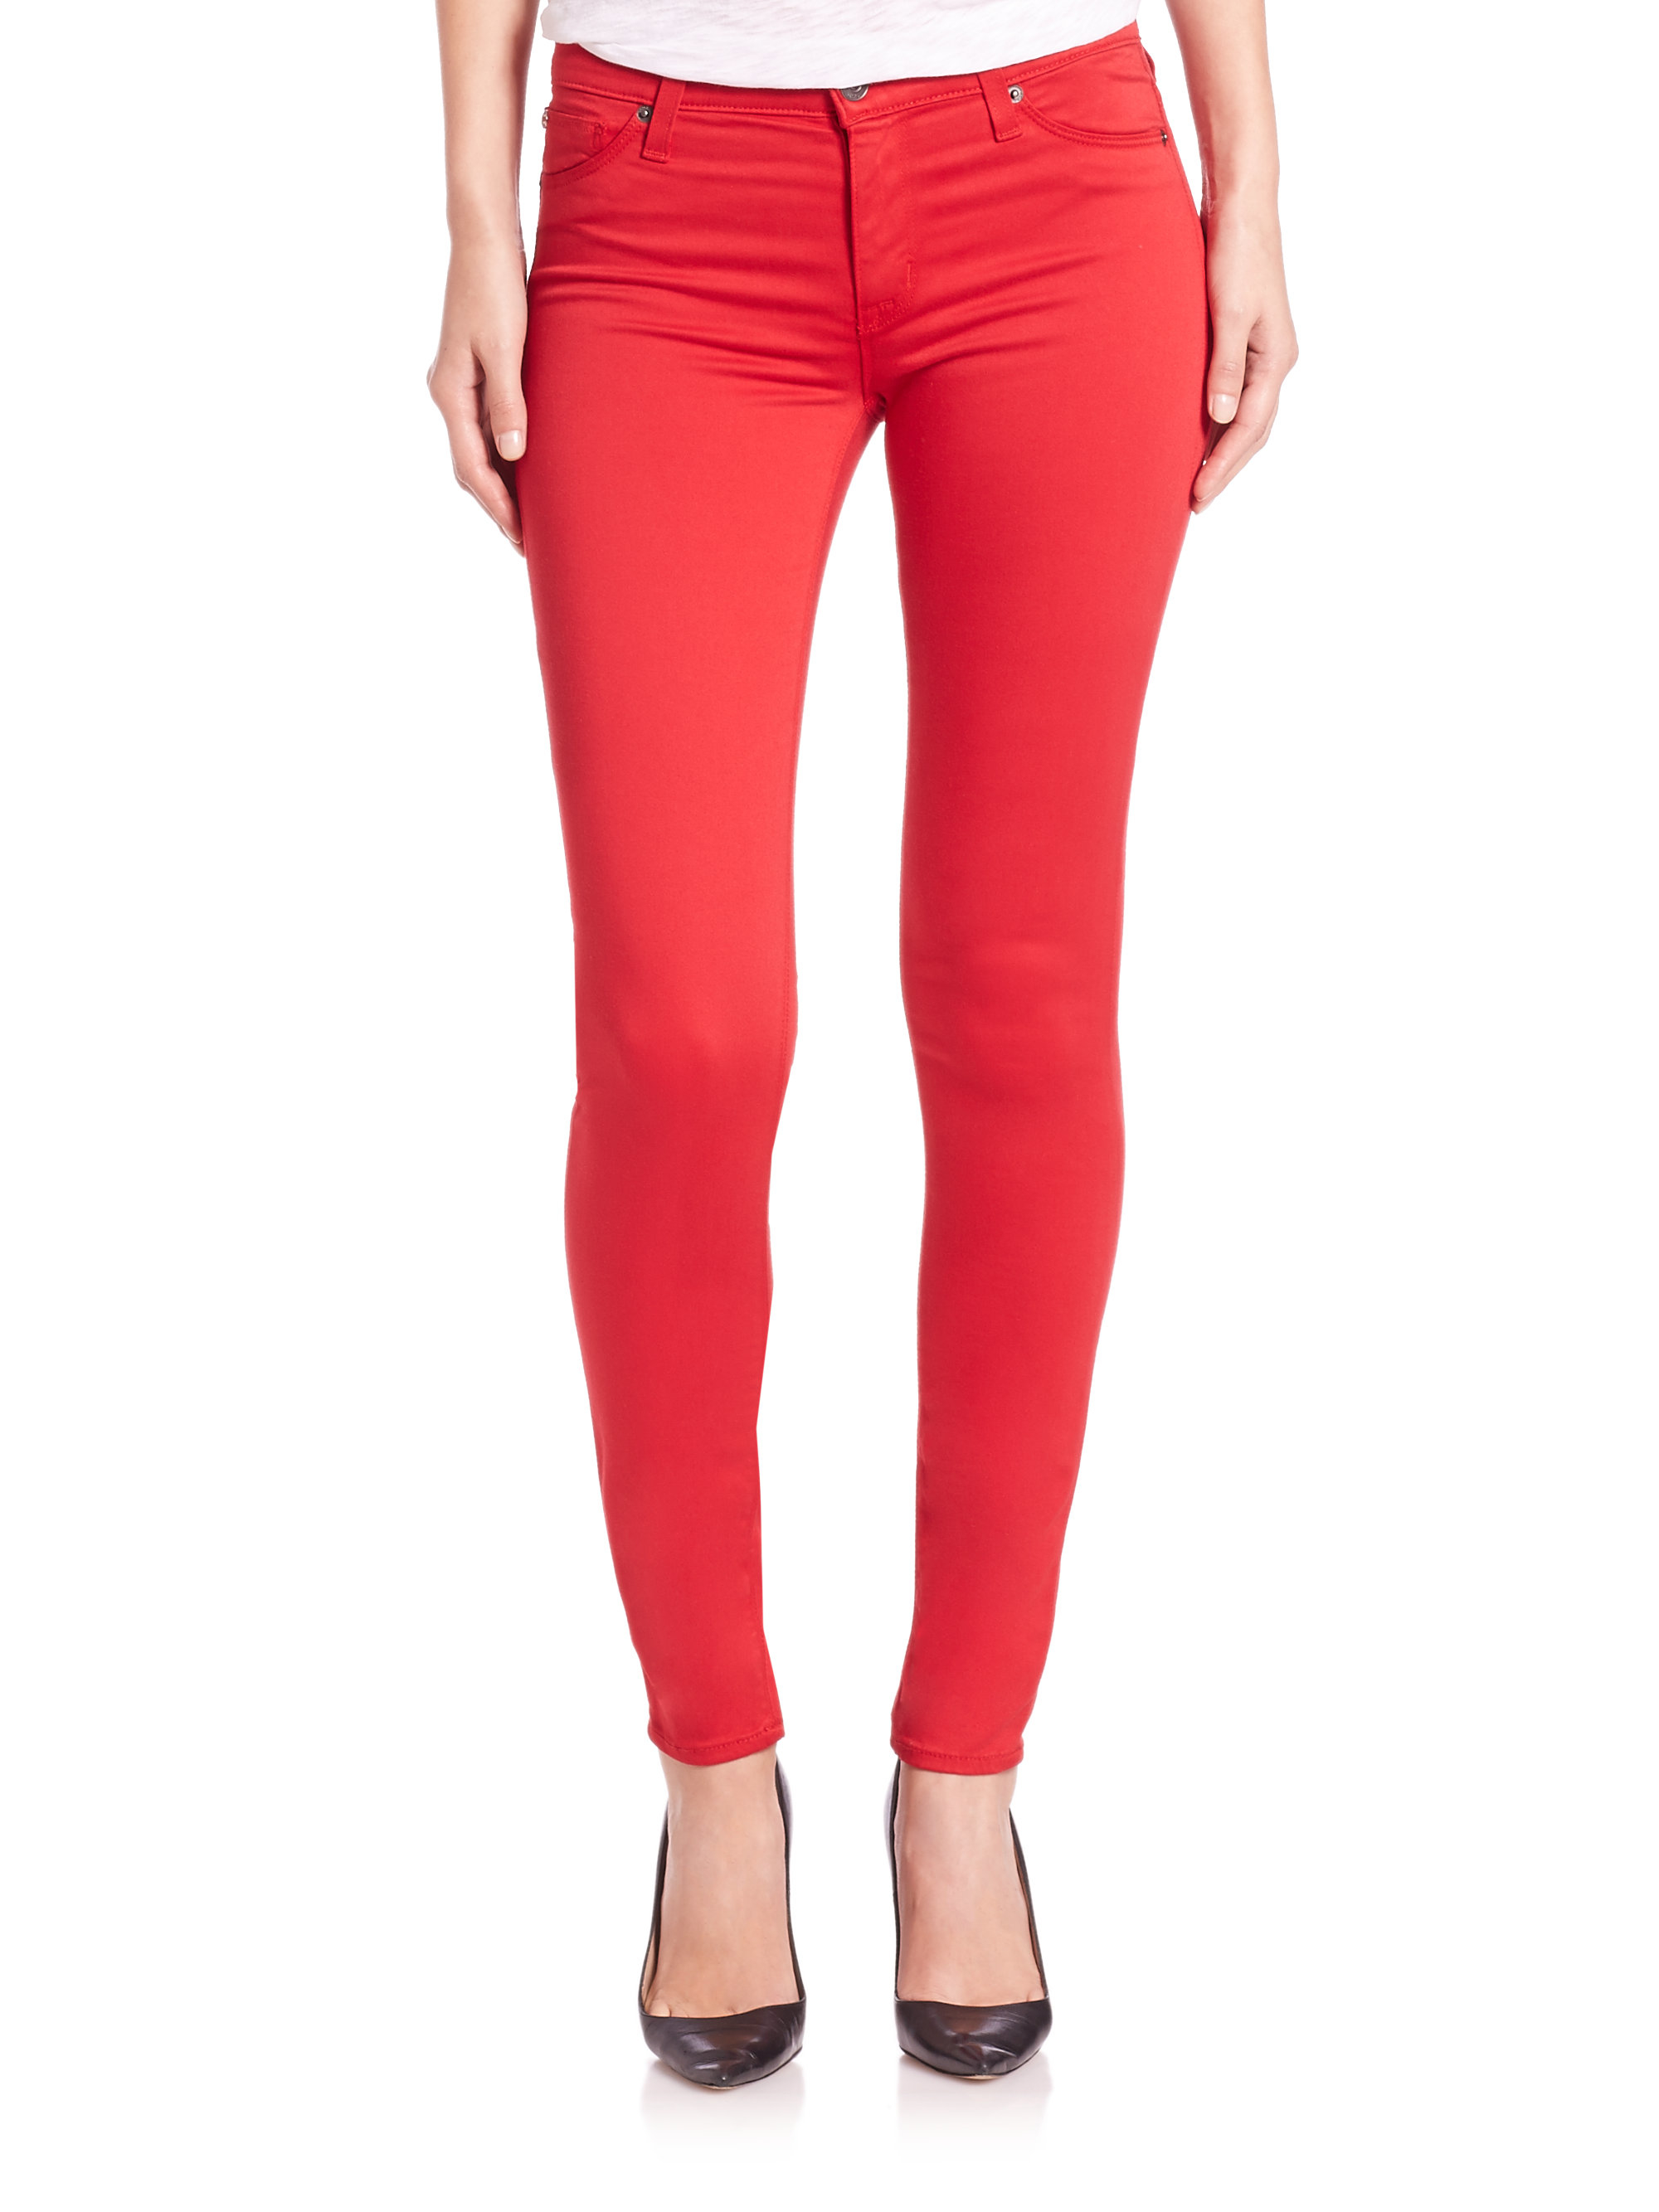 Hudson jeans Nico Mid-rise Super Skinny Jeans in Red | Lyst